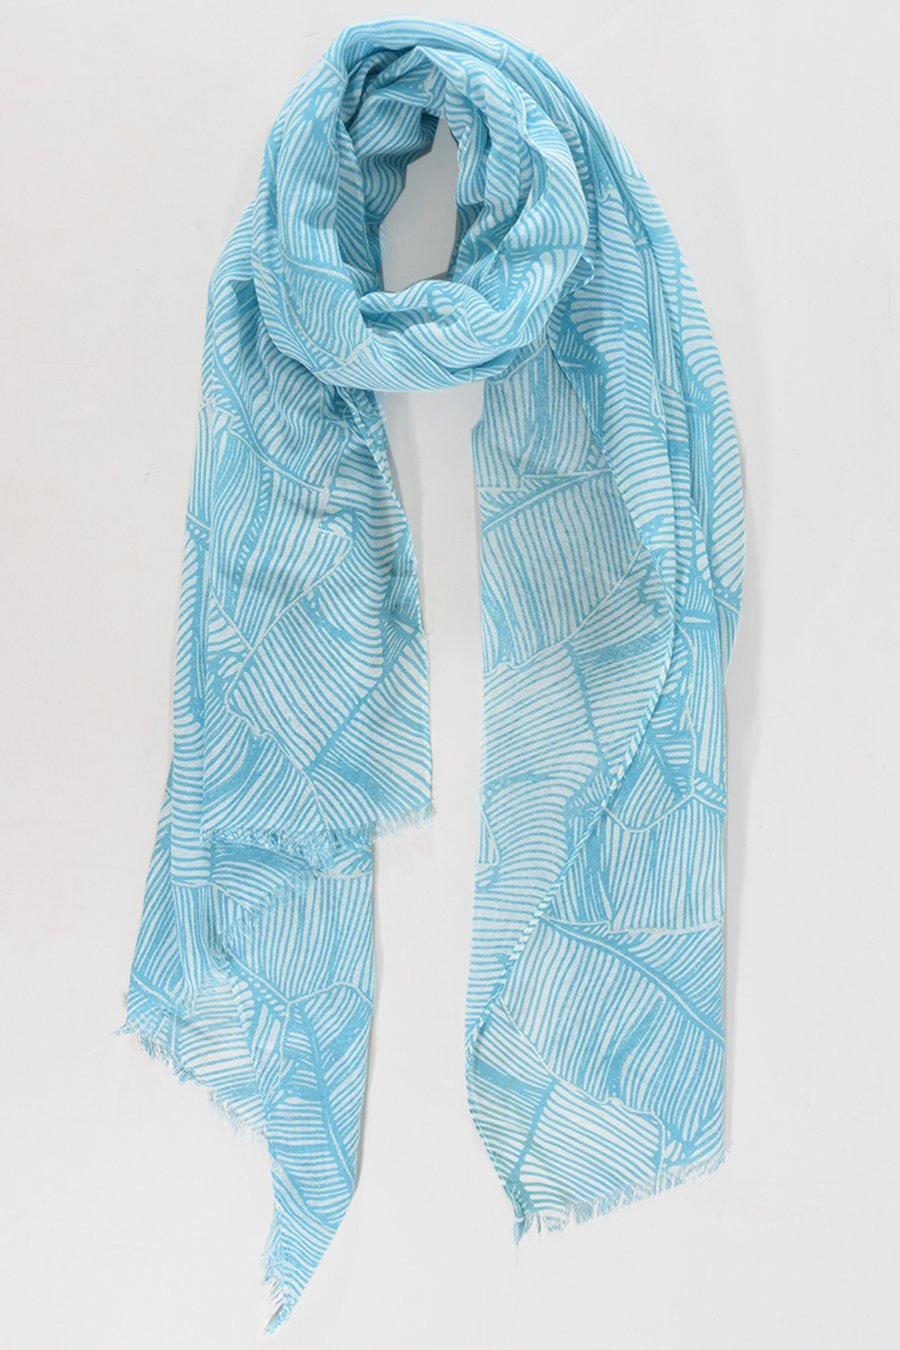 MSH Turquoise Silver Palm Leaf Outline Print Scarf